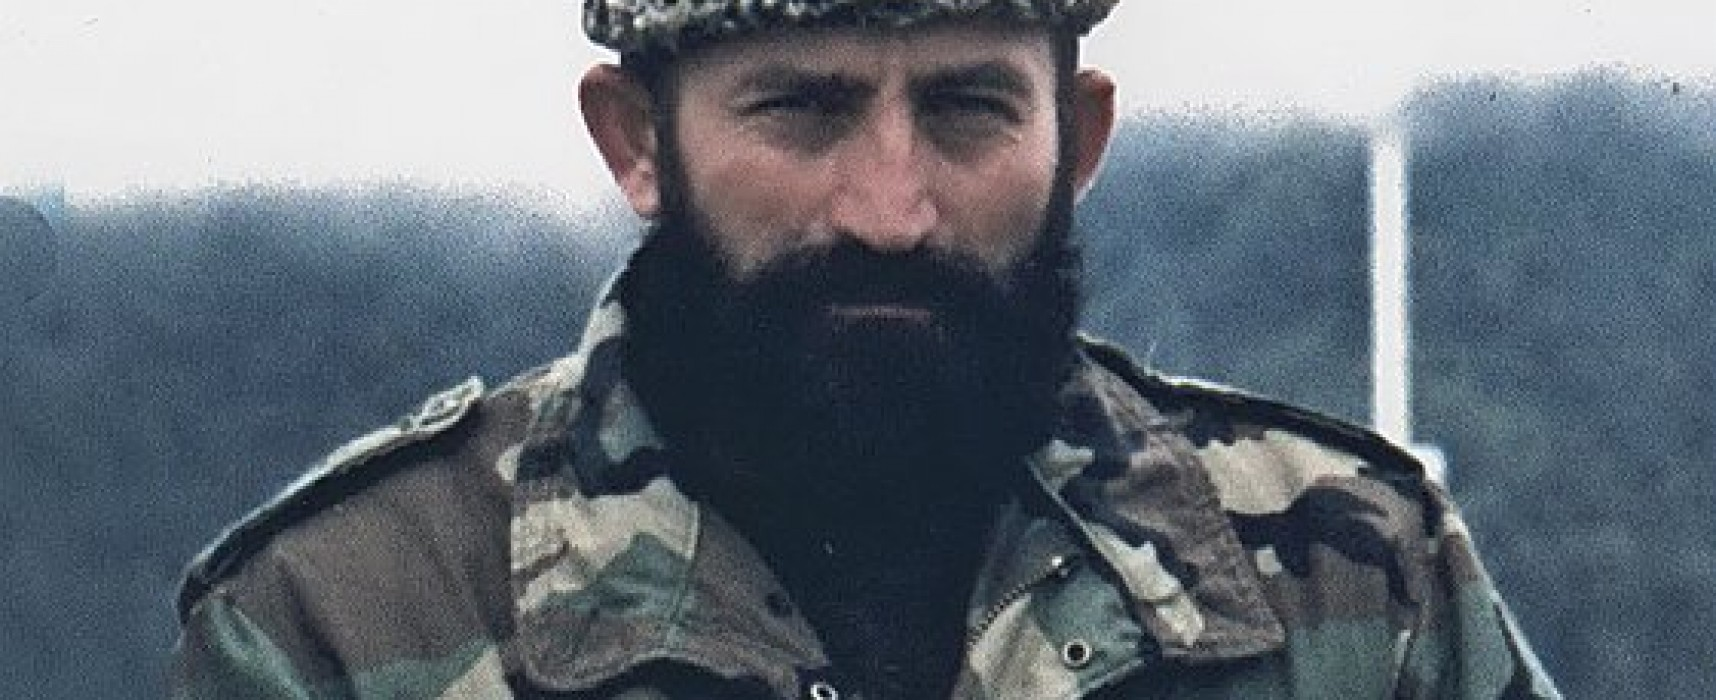 Militants of 'Donetsk People Republic' Announced That They Had Killed Vakhid Bamatgiriev Who Had Perished in 2000